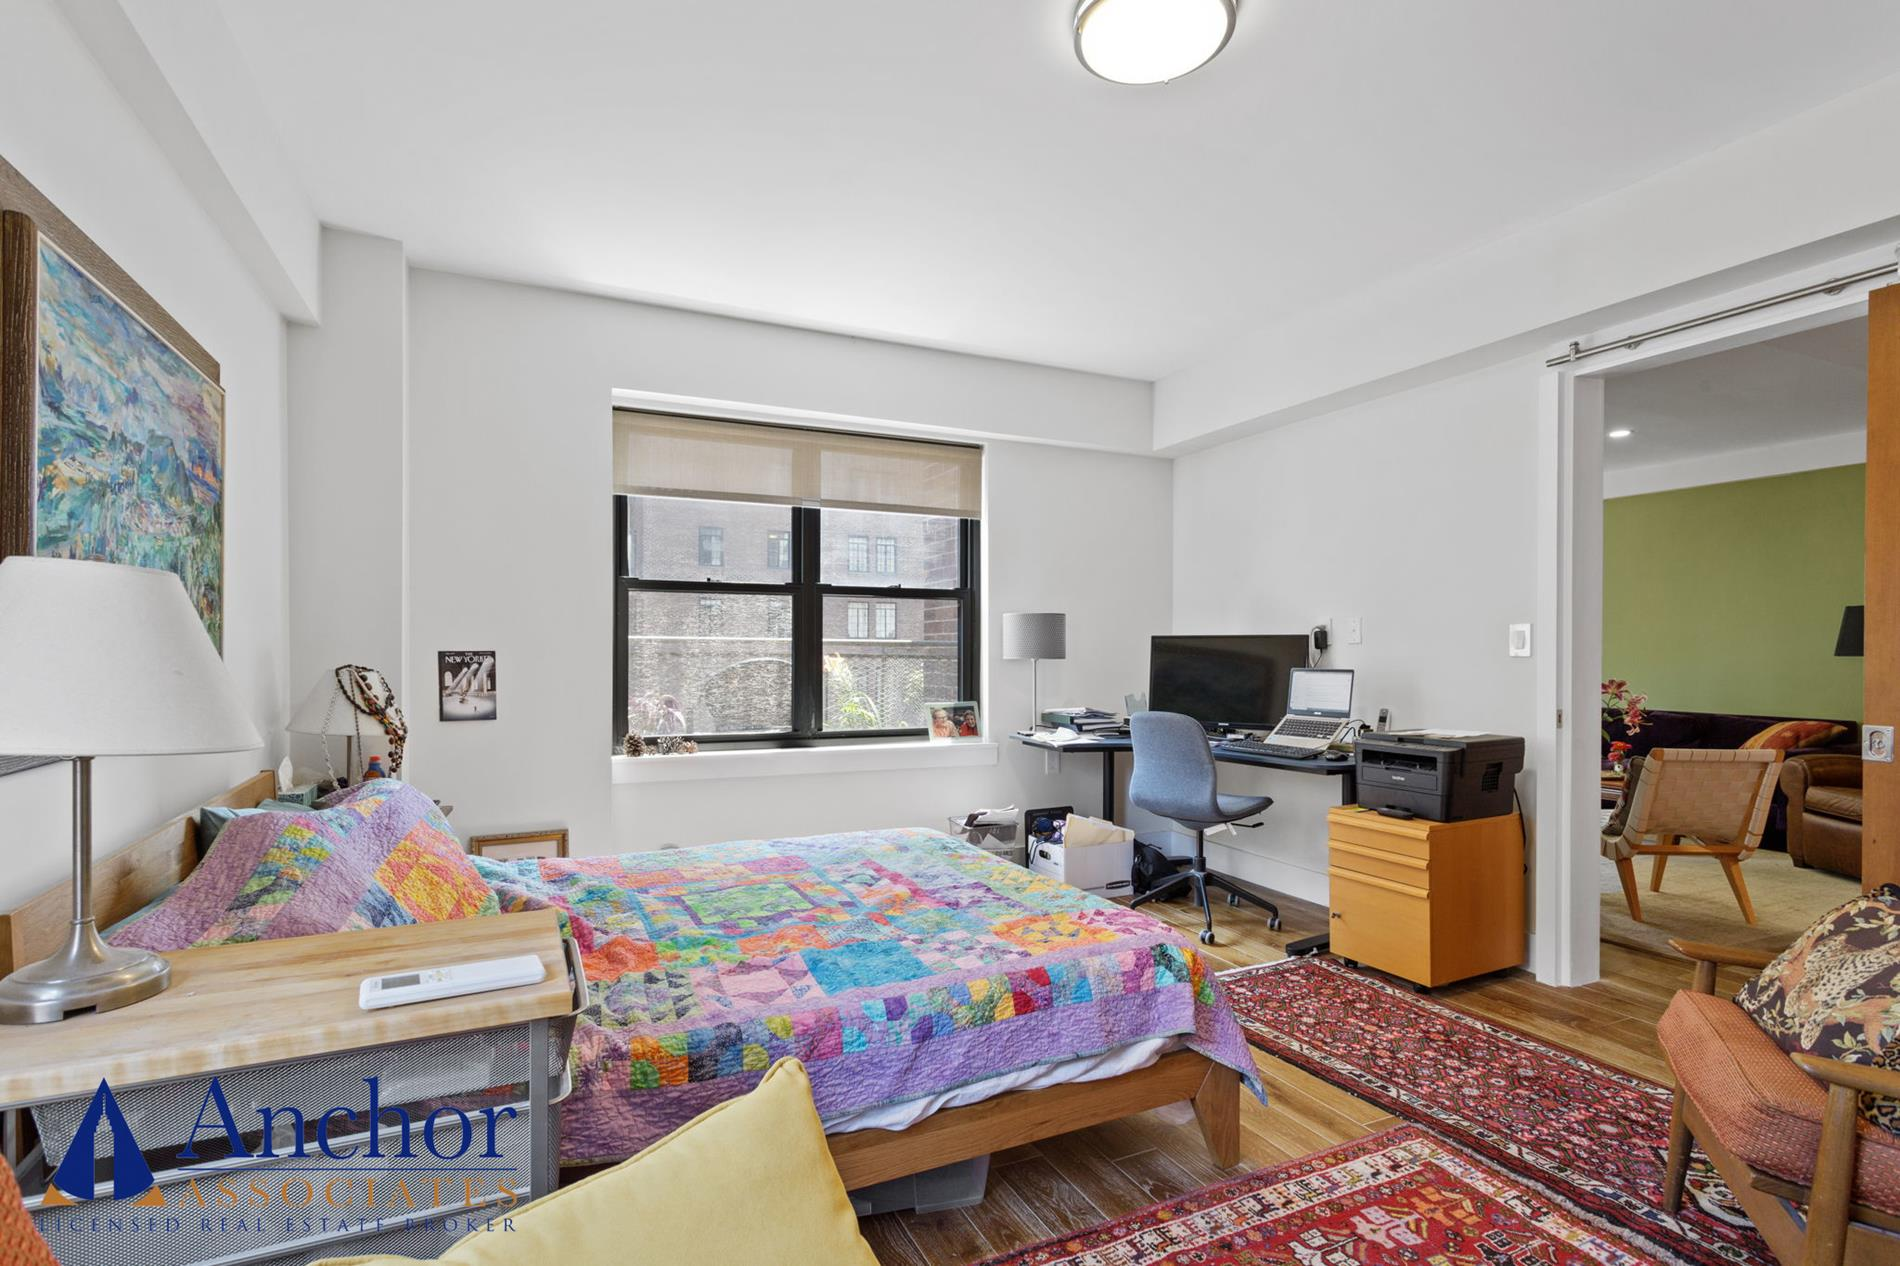 Apartment for sale at 2 Tudor City Place, Apt 15-BS